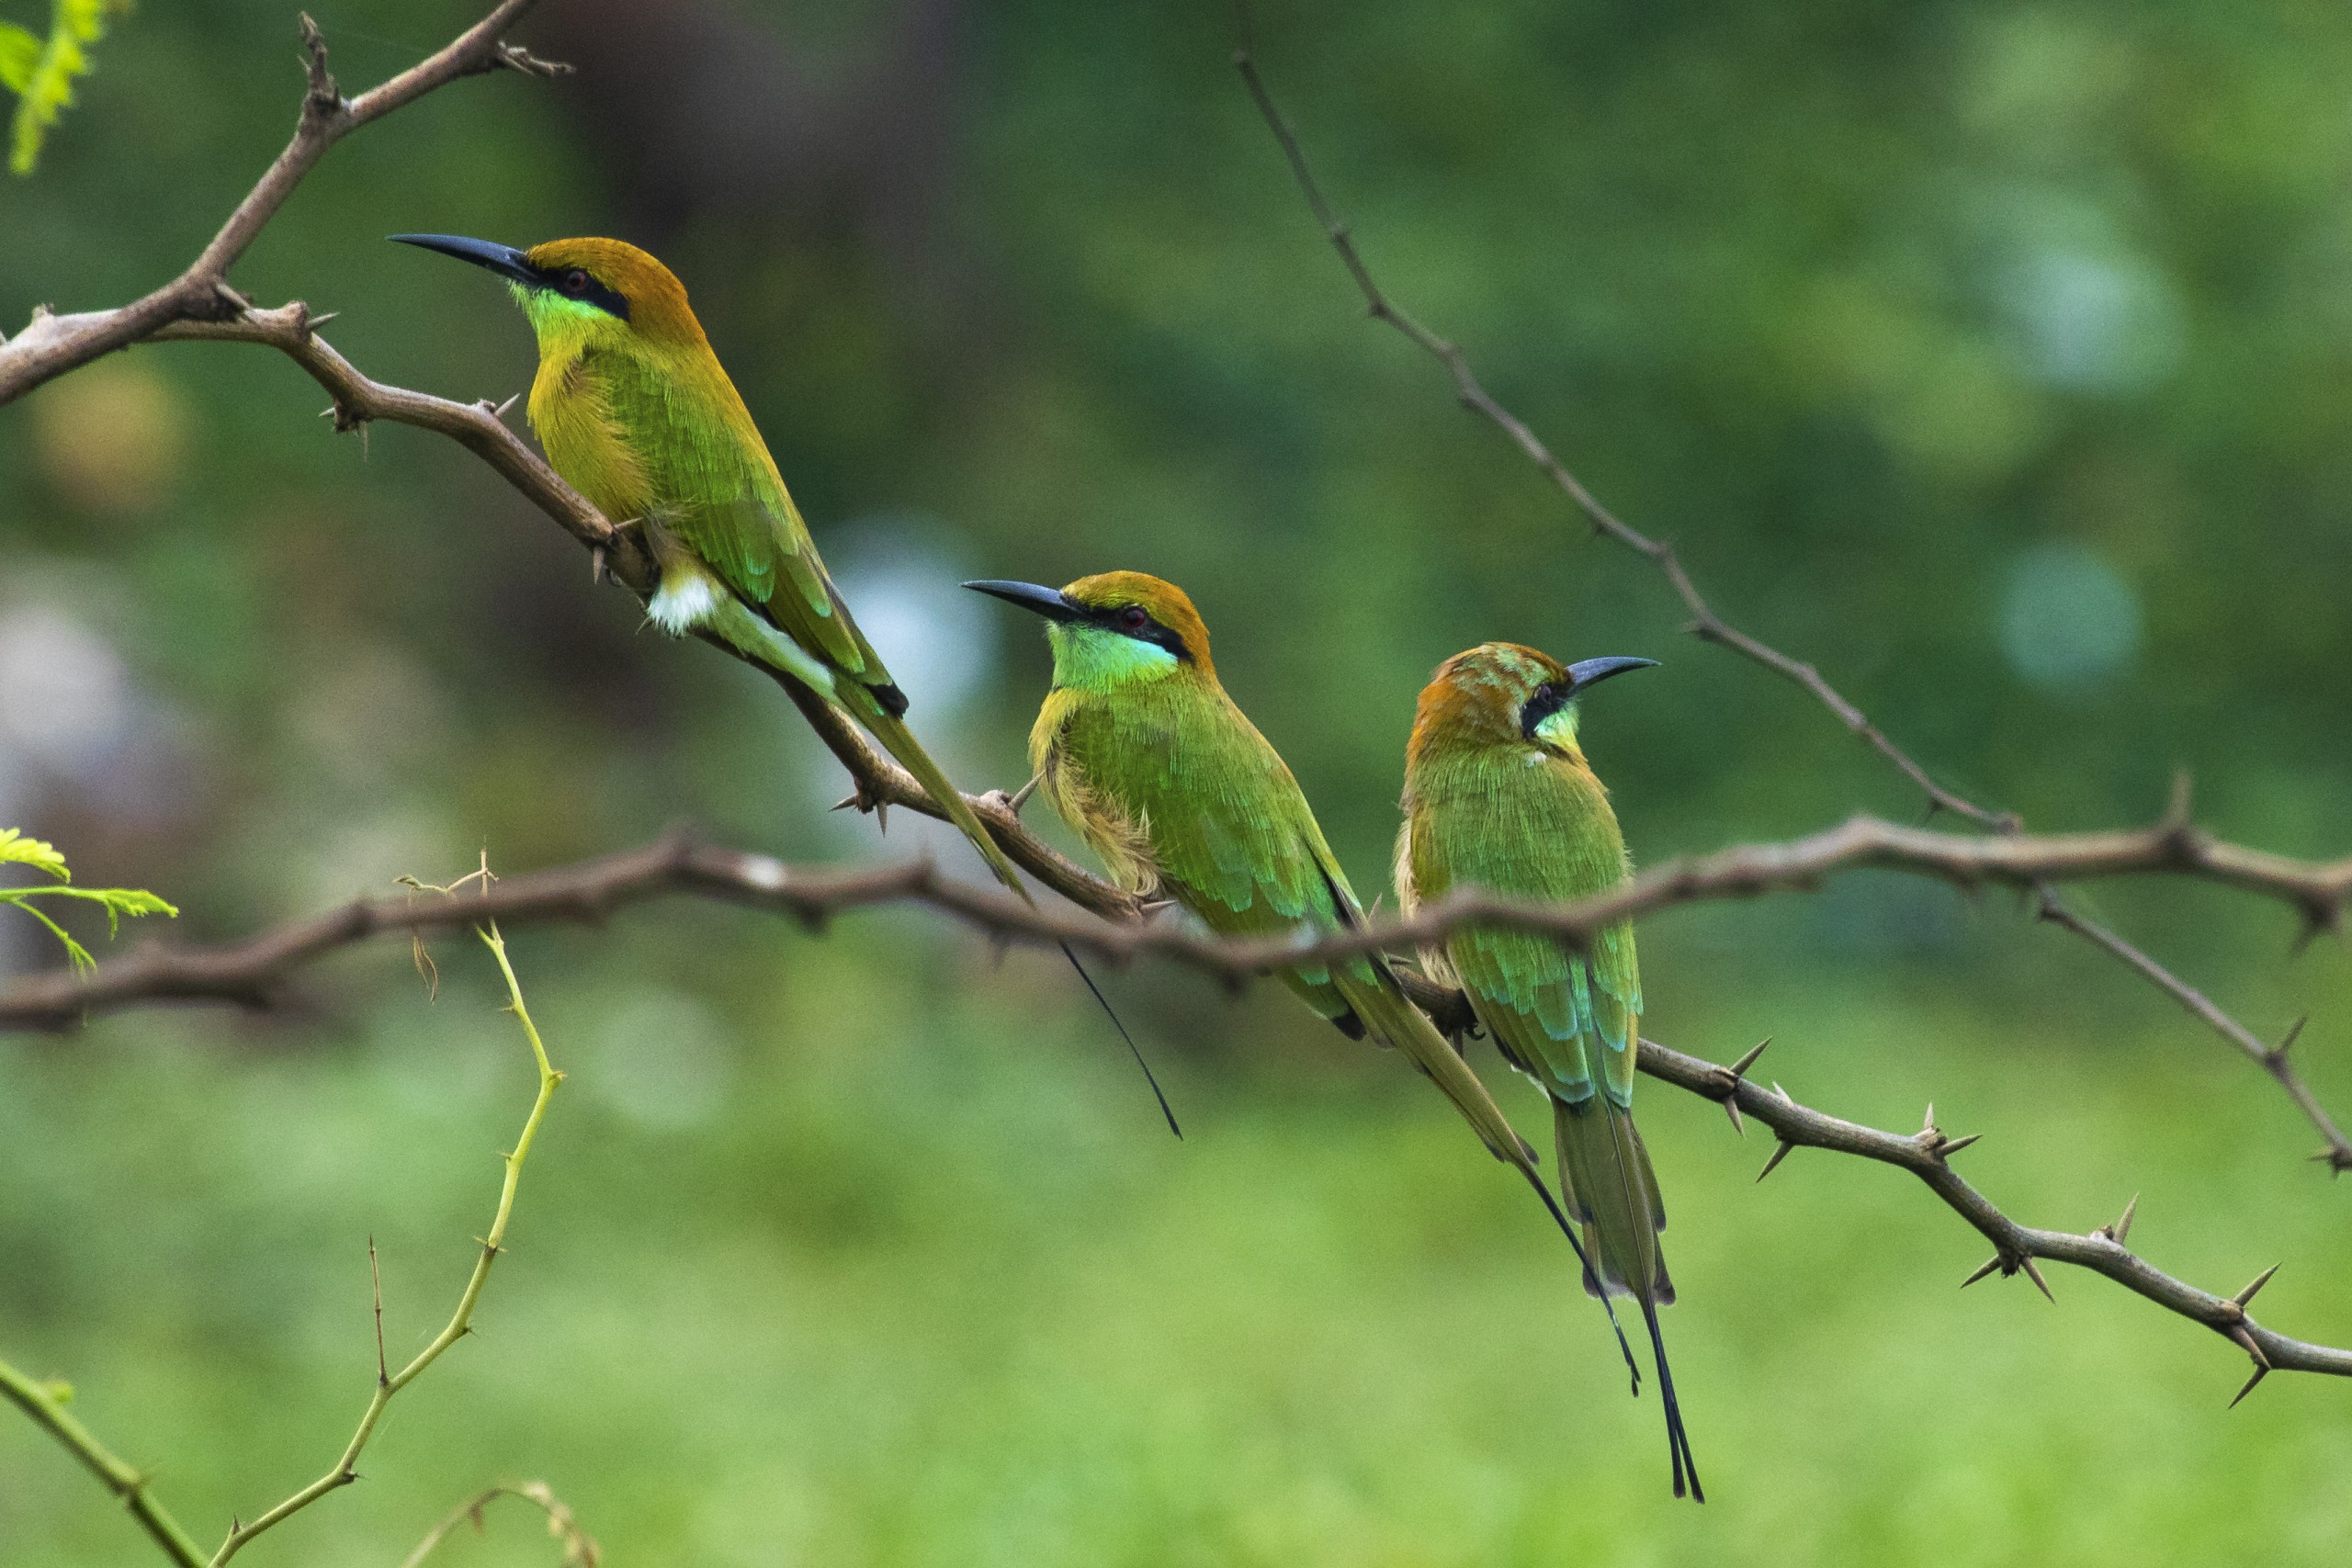 Bee-eaters perched on a branch